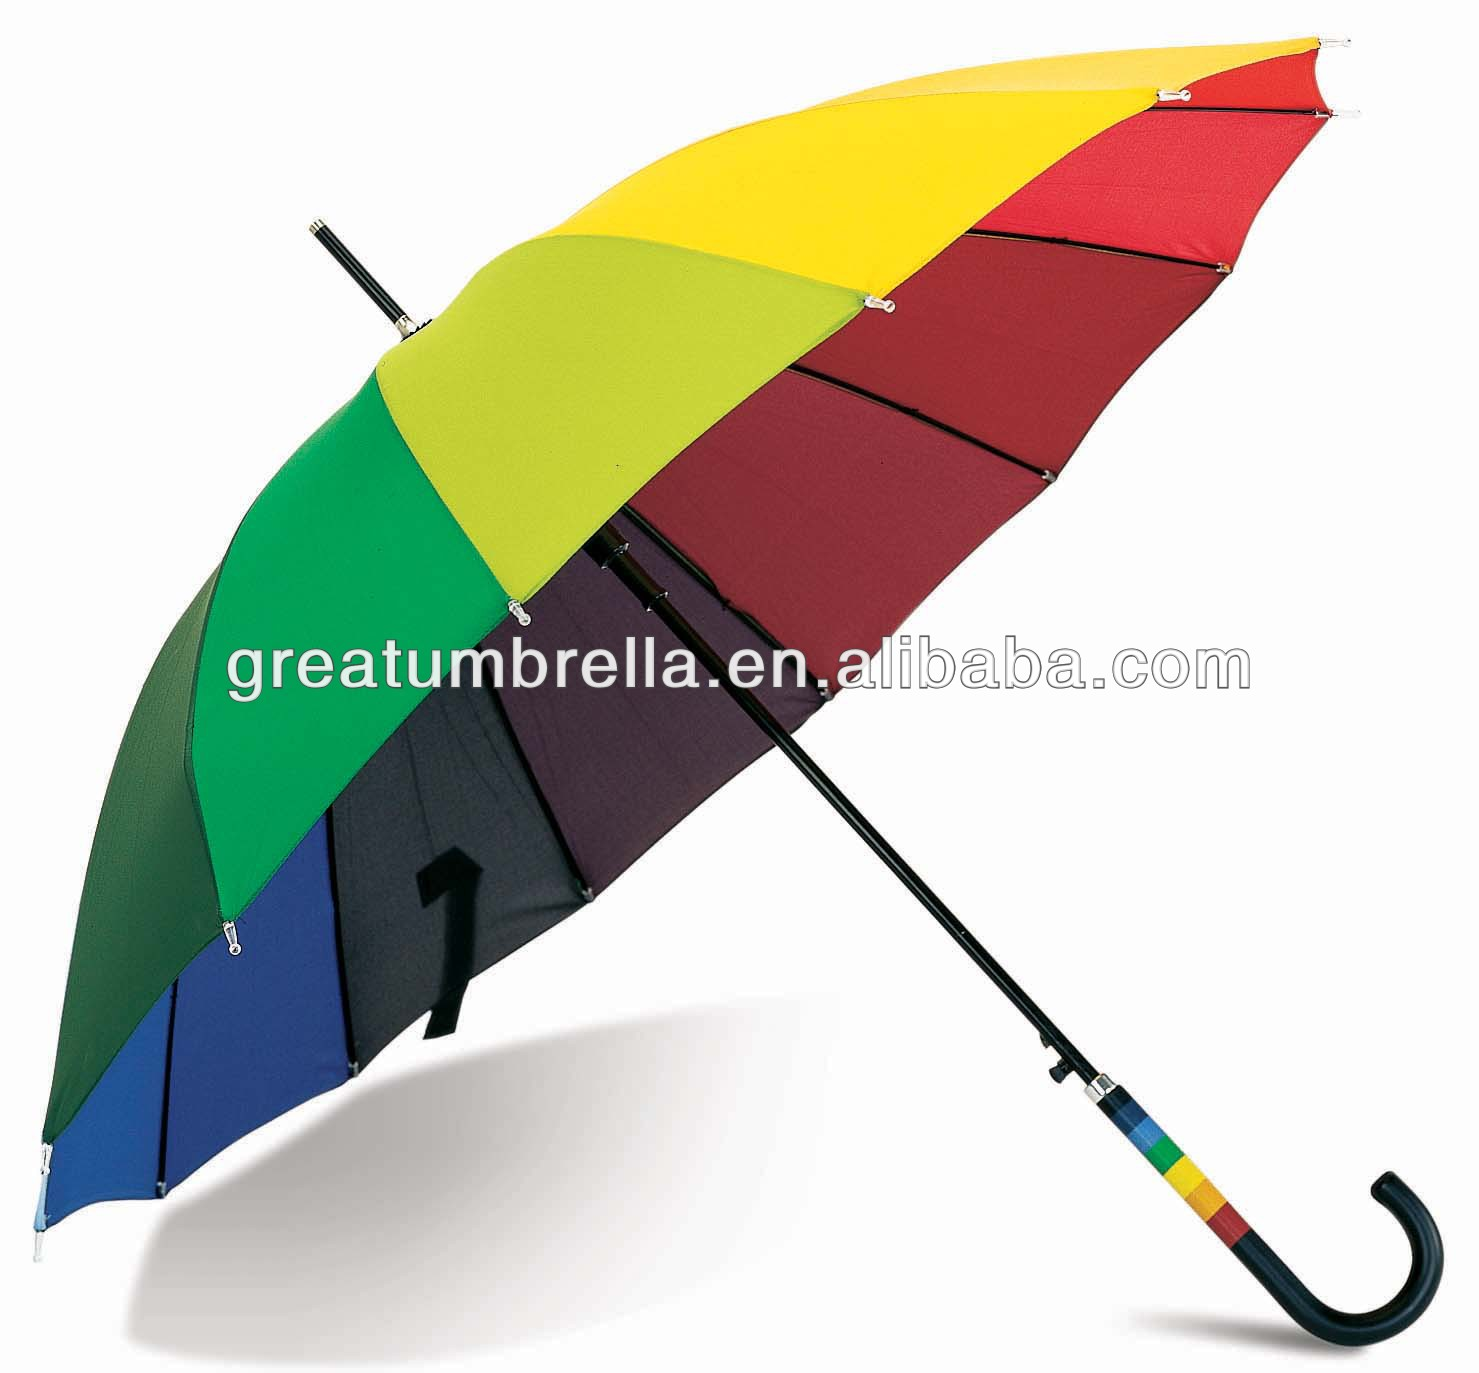 Full color impresso 16 costelas barato big rainbow umbrella